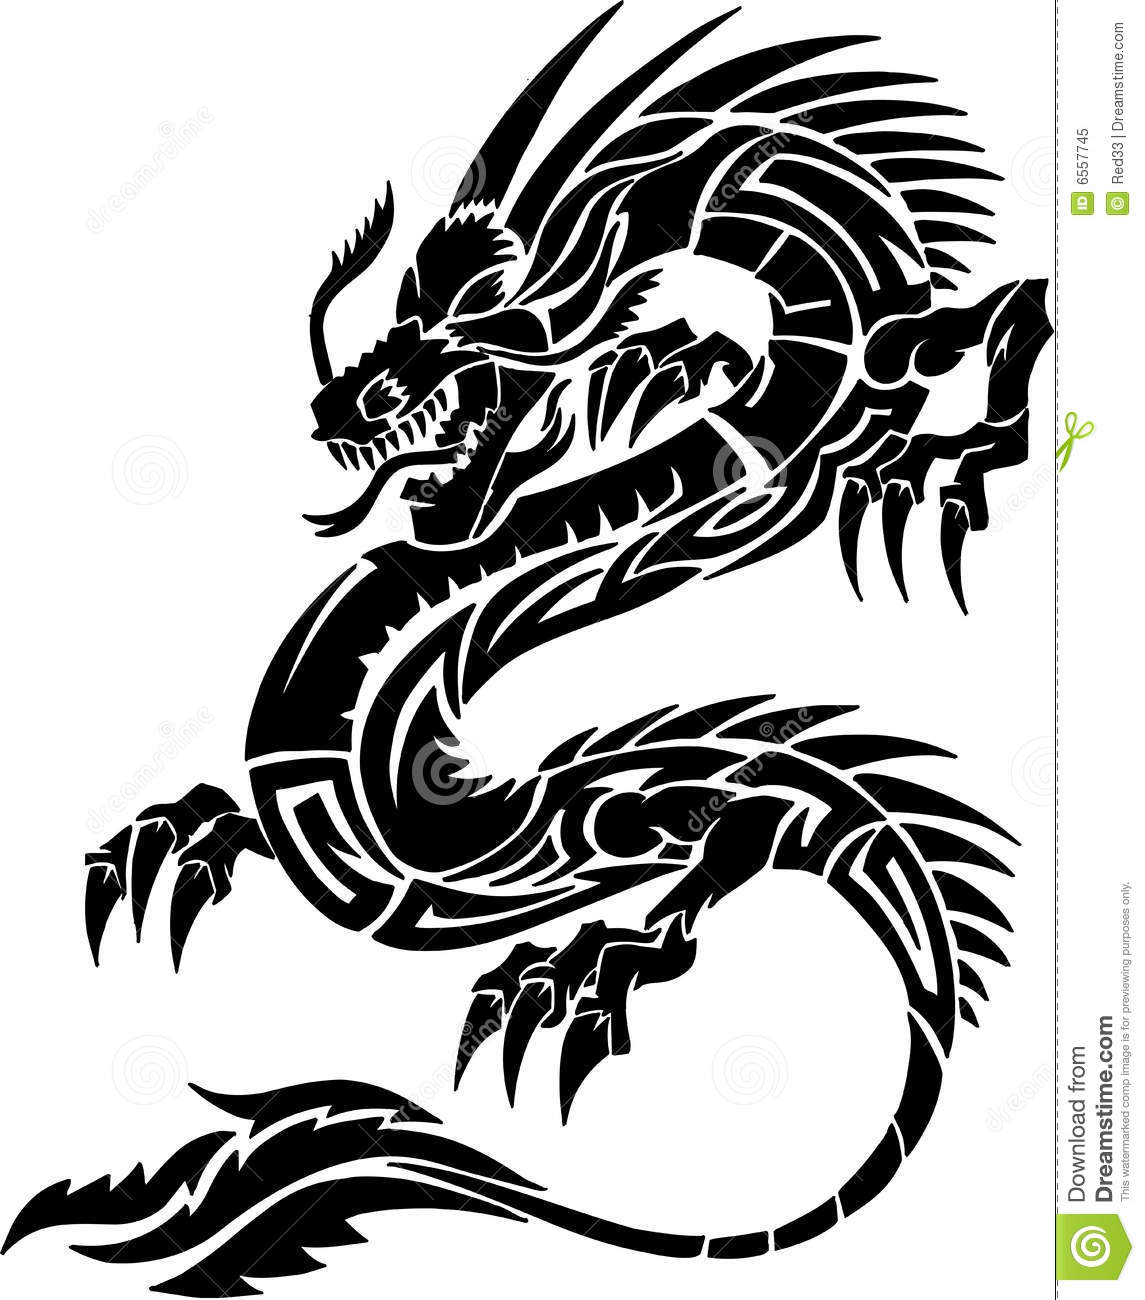 Illustration tribale de vecteur de dragon de tatouage